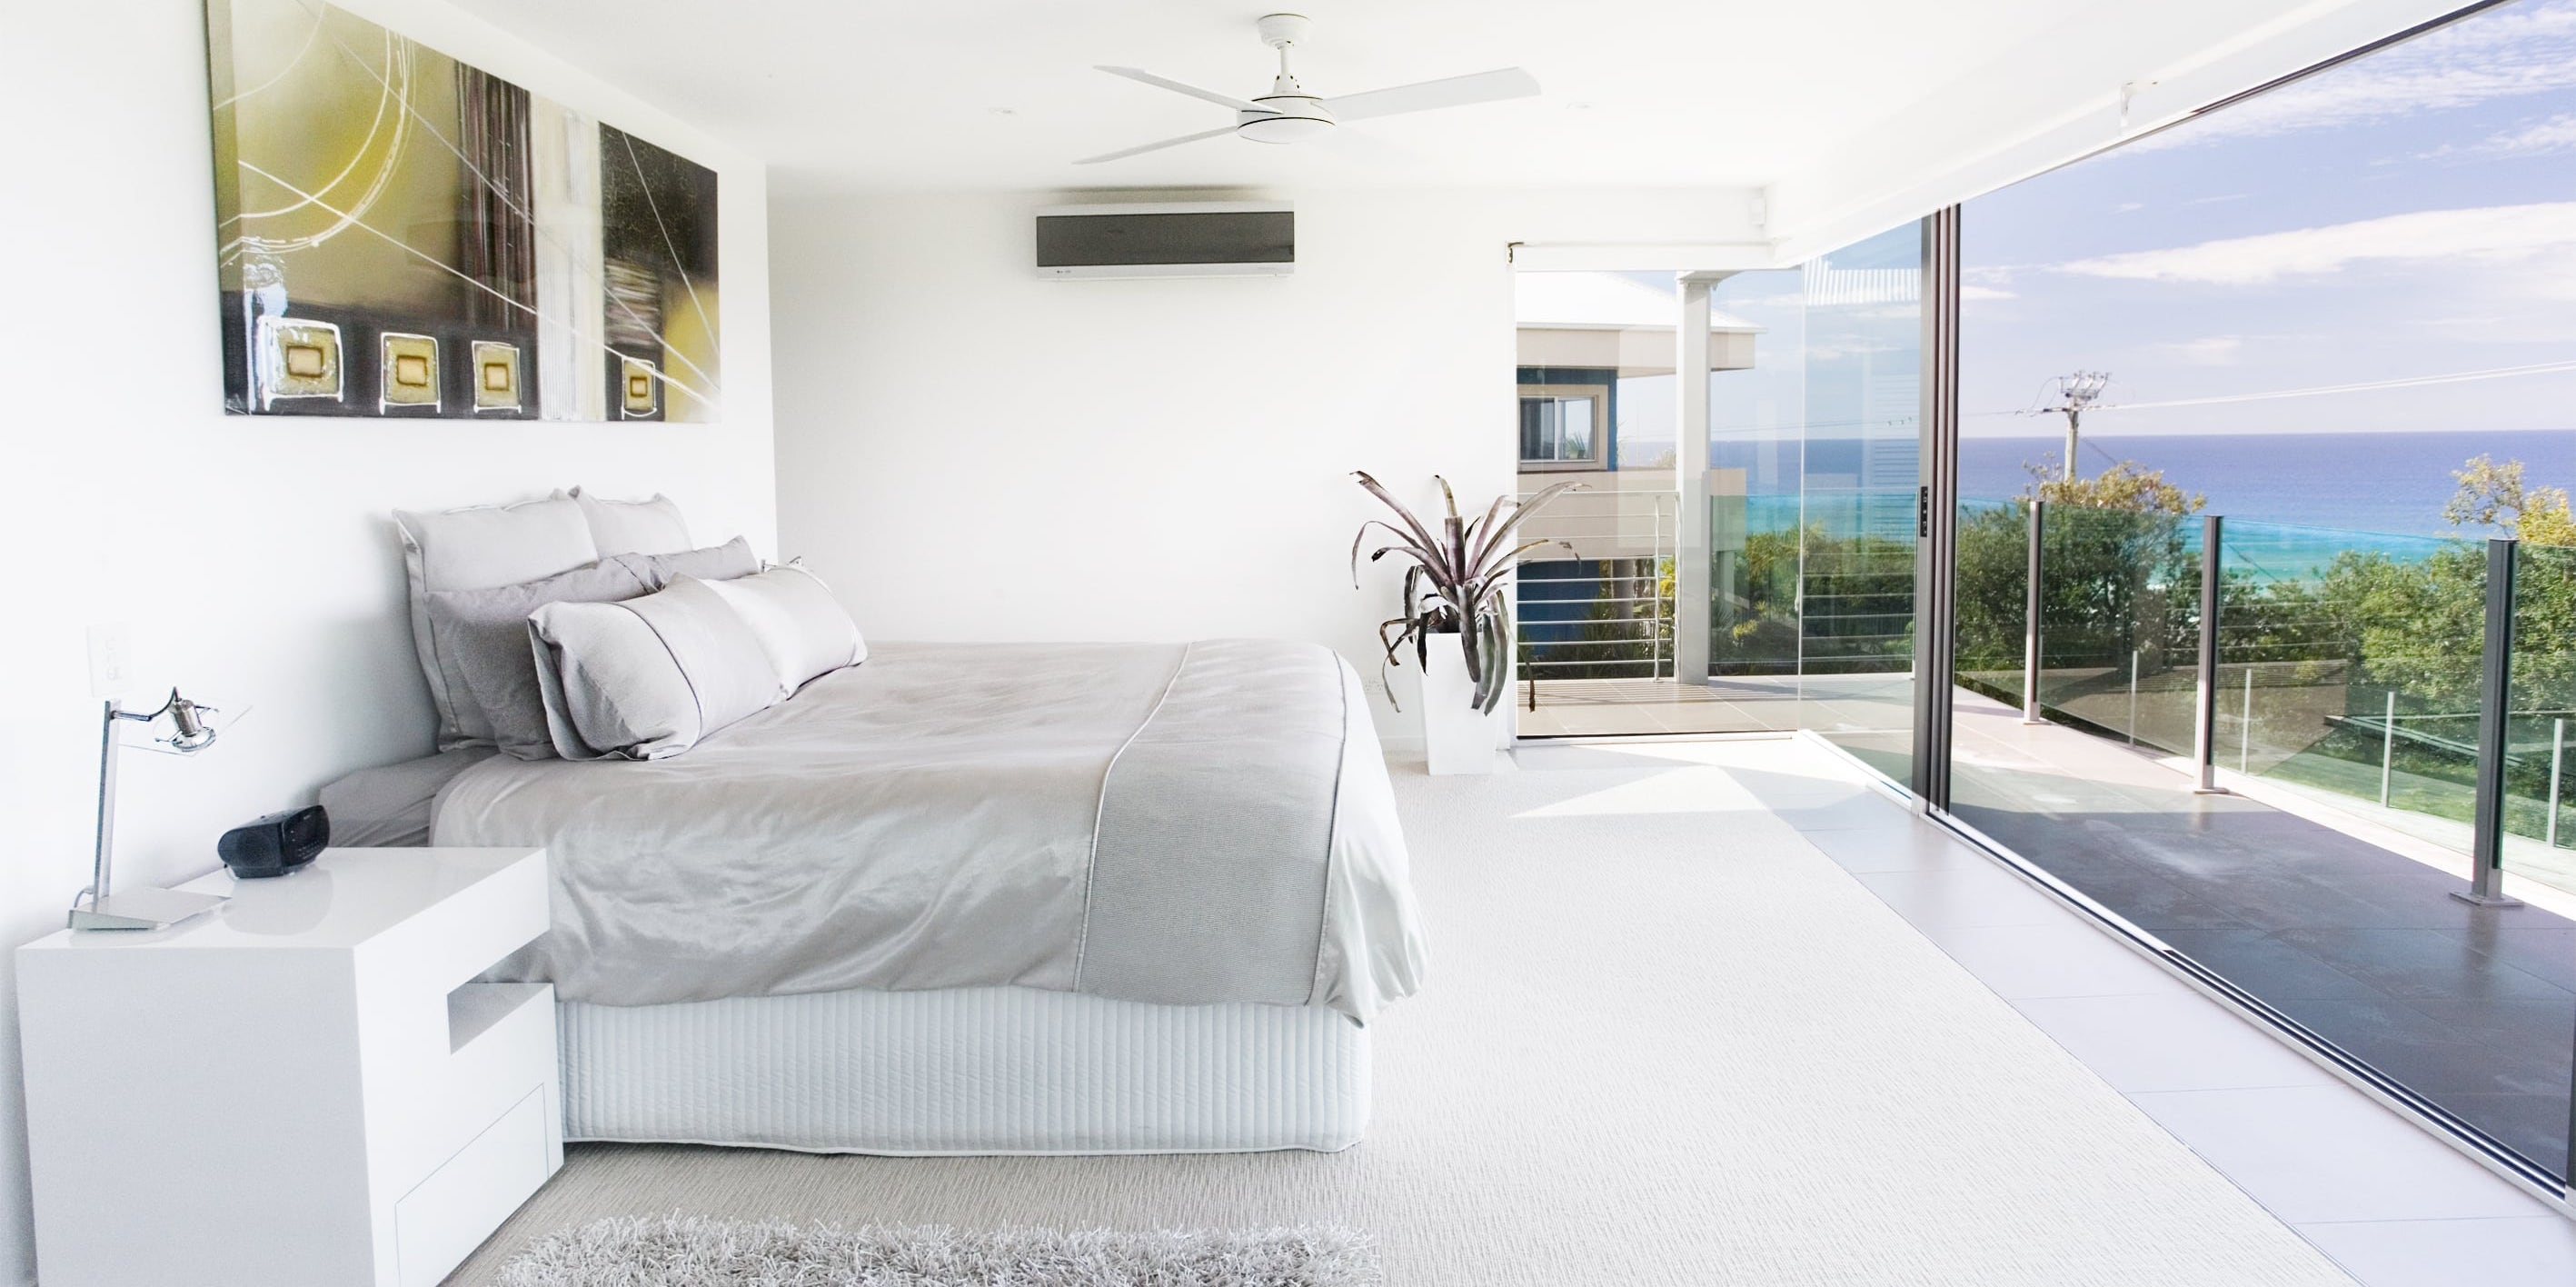 Projects by mdesign, a building design practice that operates on the Sunshine Coast.